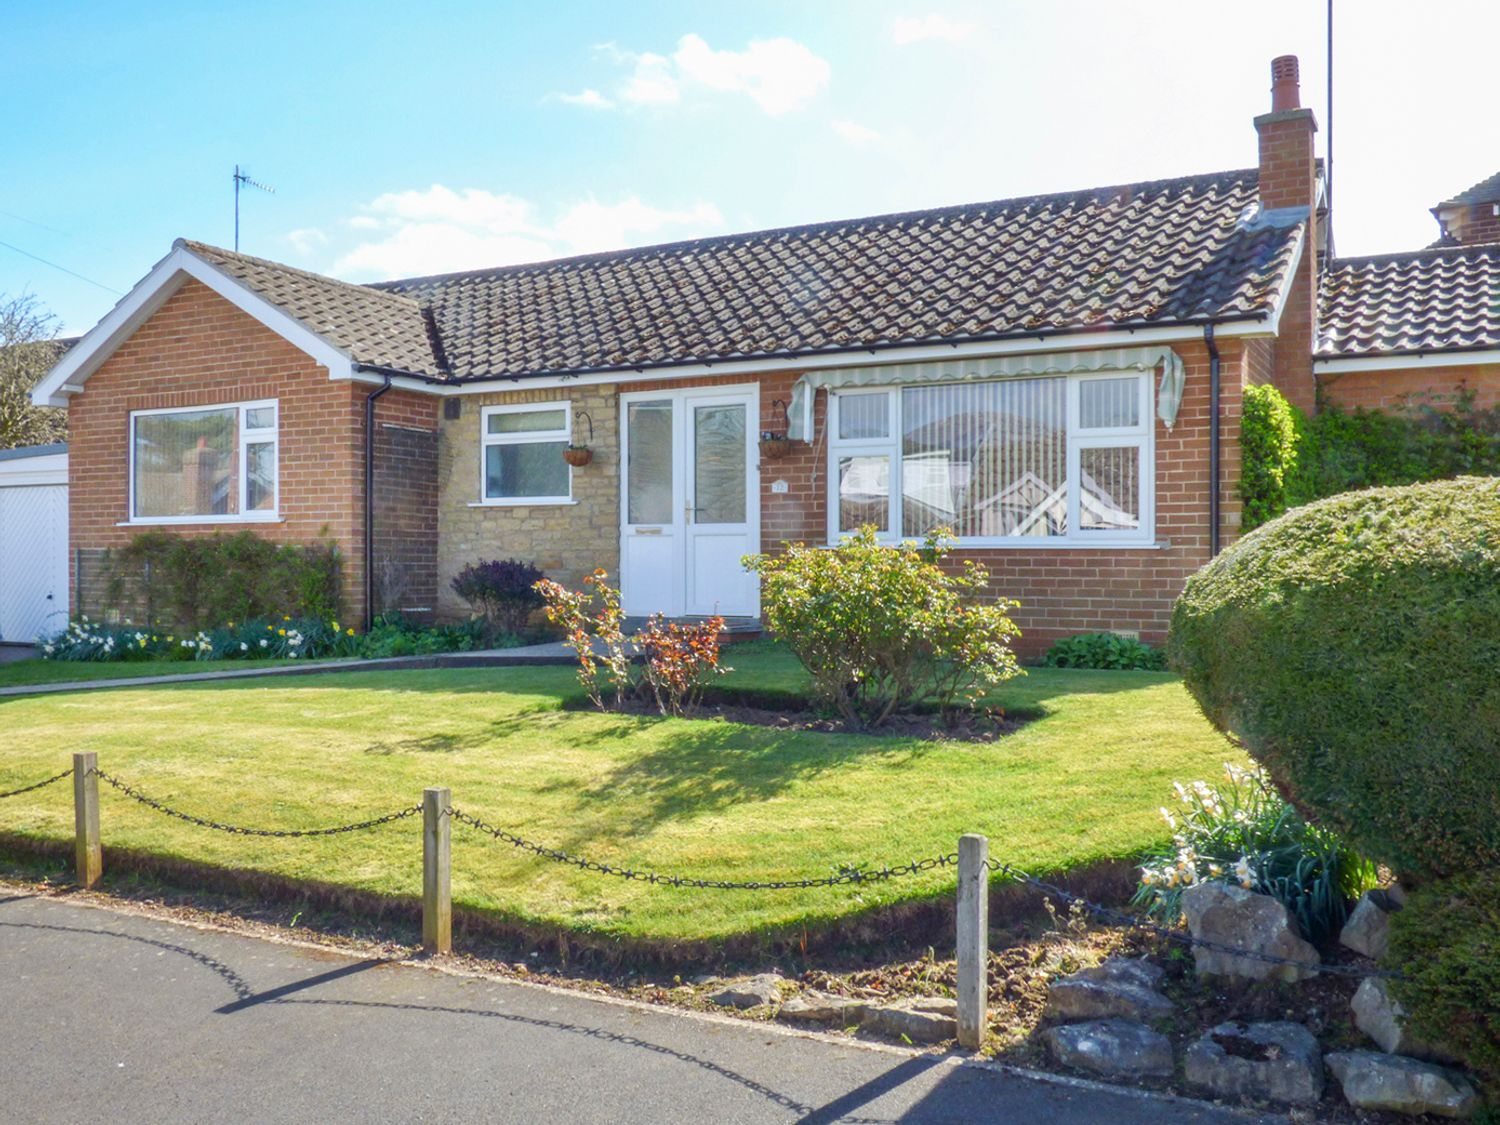 12 Hackness Drive - Whitby & North Yorkshire - 937070 - photo 1